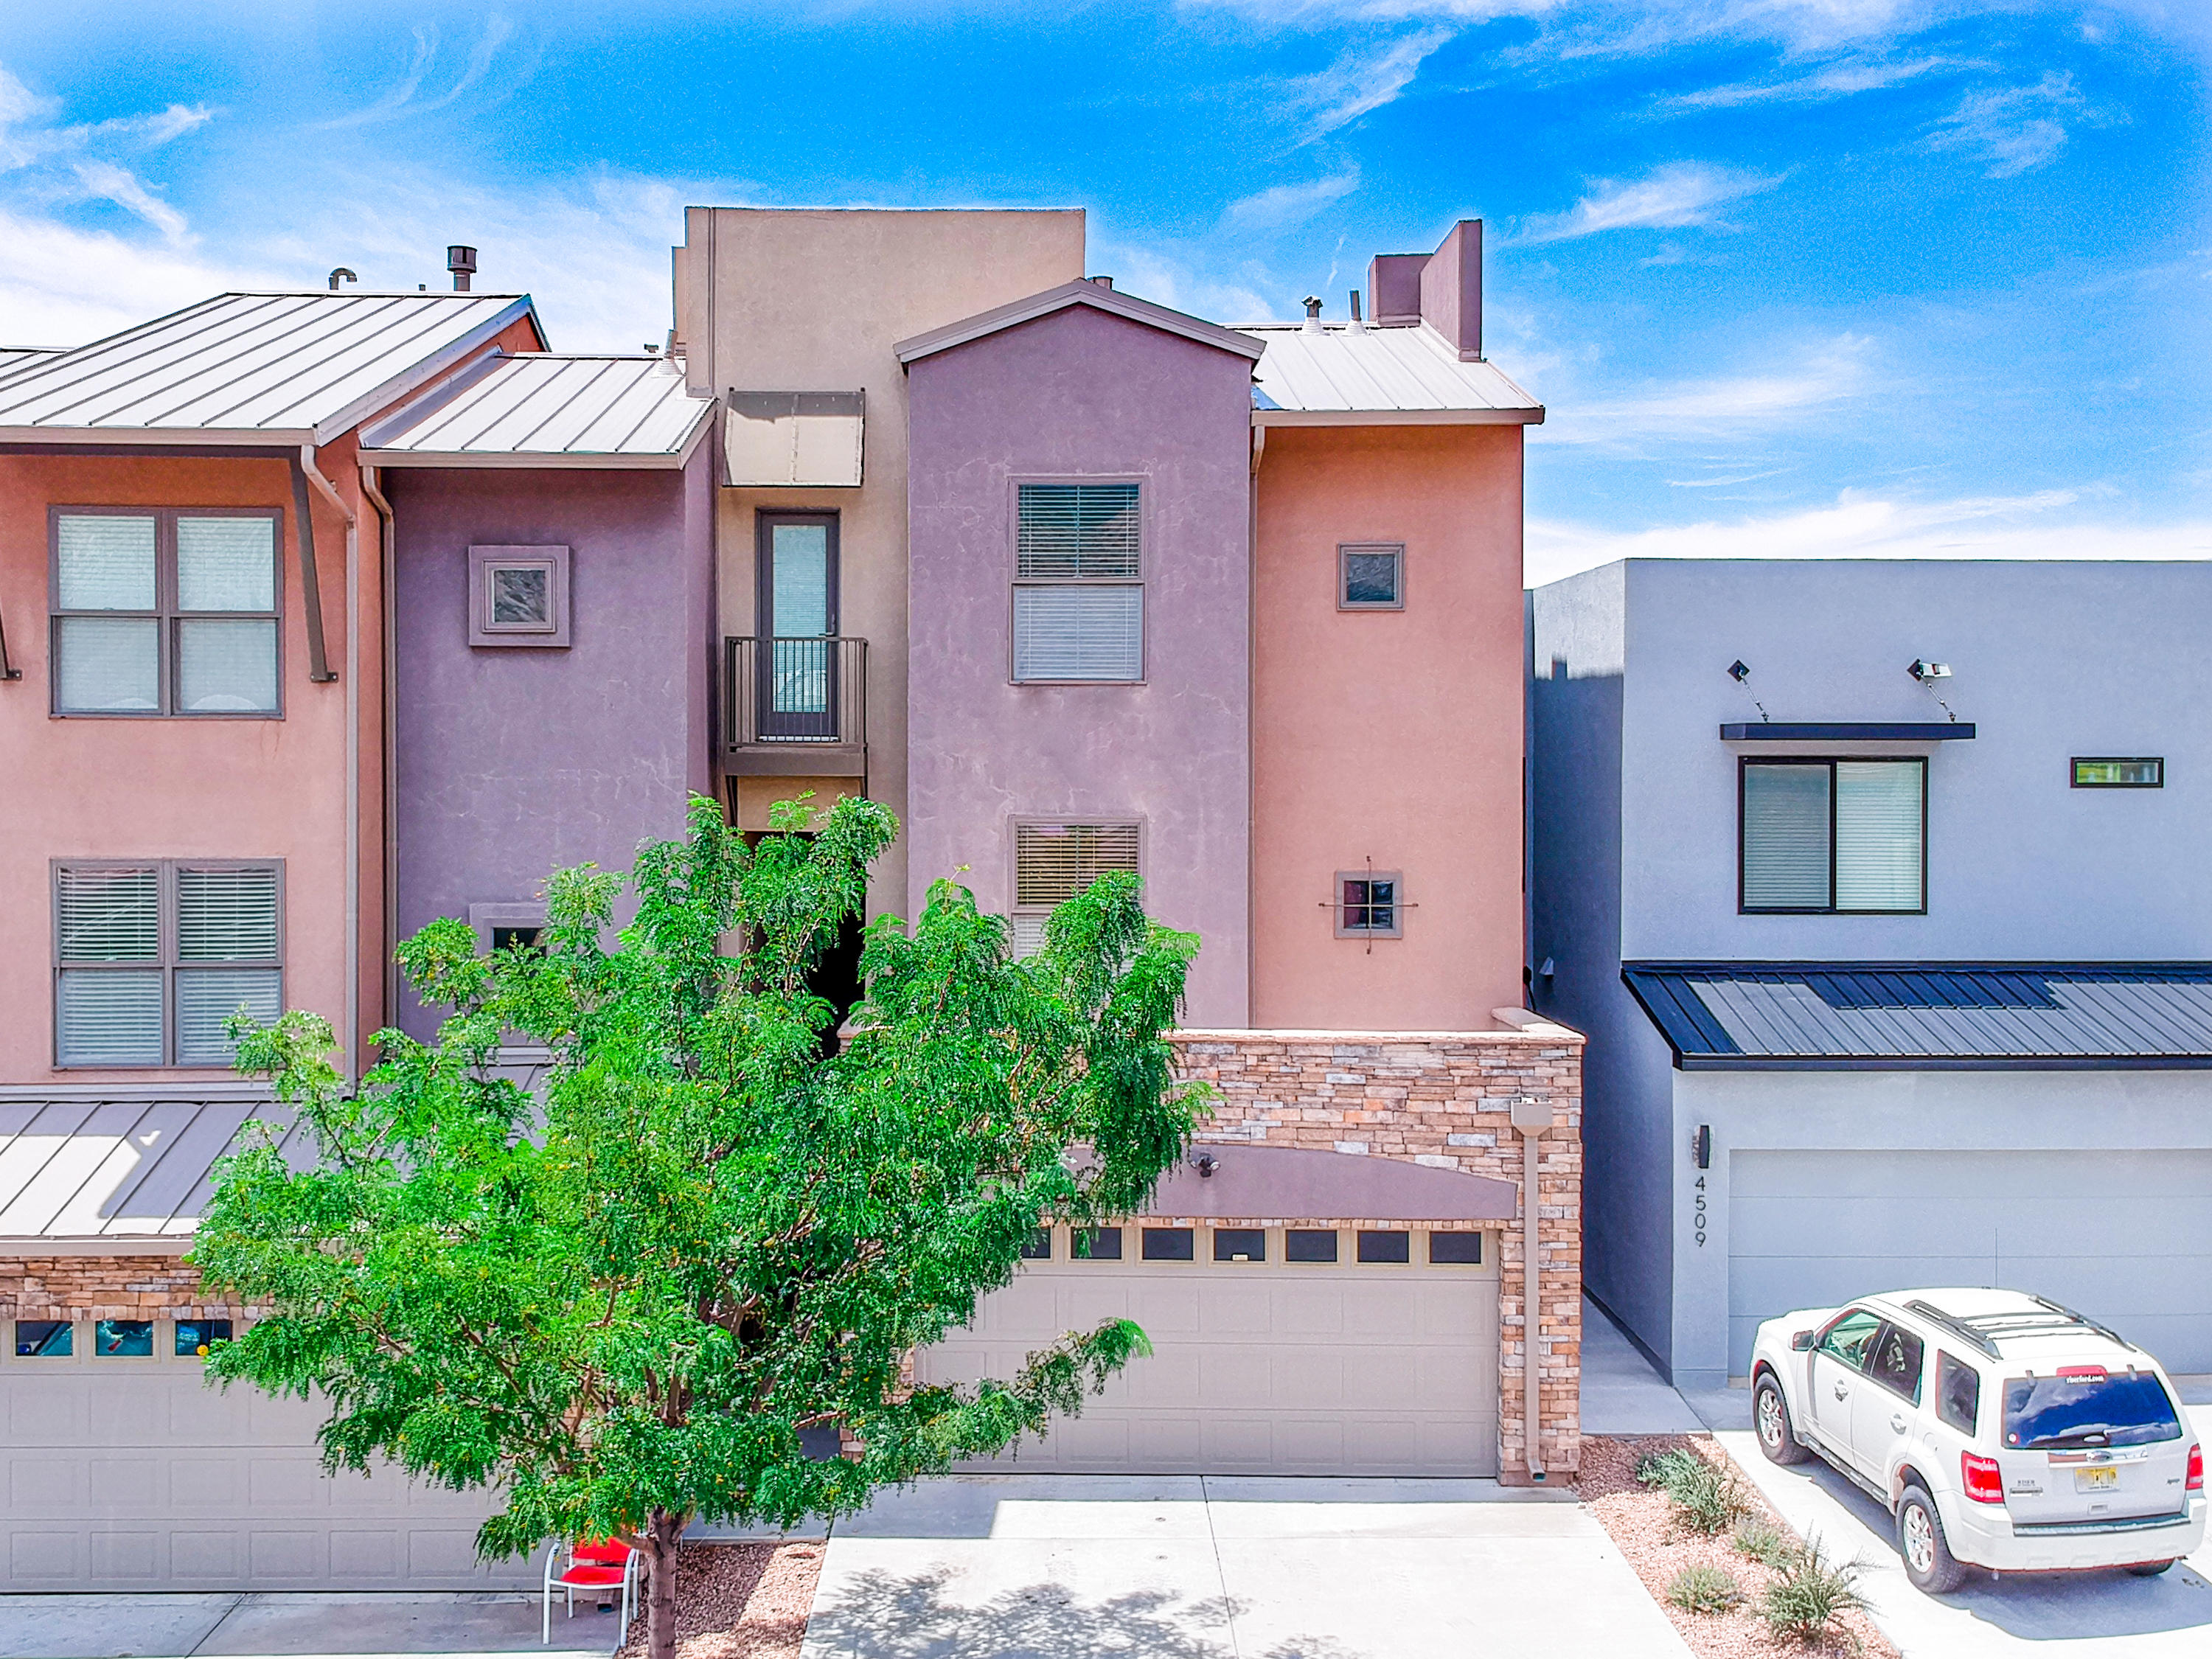 Unique residential elevator! Architecturally interesting in & out. Premier NE heights location is close to in-demand schools, shopping, dining, & hiking. Certified to Build Green NM Silver standards & loaded with features you expect of fine homes. Kitchen is finished with energy-efficient stainless steel appliances, tasteful tile, & granite countertops. Move yourself & things easily between levels in custom & unique residential elevator. Well-thought floor plan situates bedrooms privately & with access to sky decks & a balcony to enjoy our NM outdoors. Come see this efficiently constructed Parade of Homes award winner. AH...comfy year round with refrigerated air, furnace installed in insulated space, & tankless water heater. The list goes on; take a look!